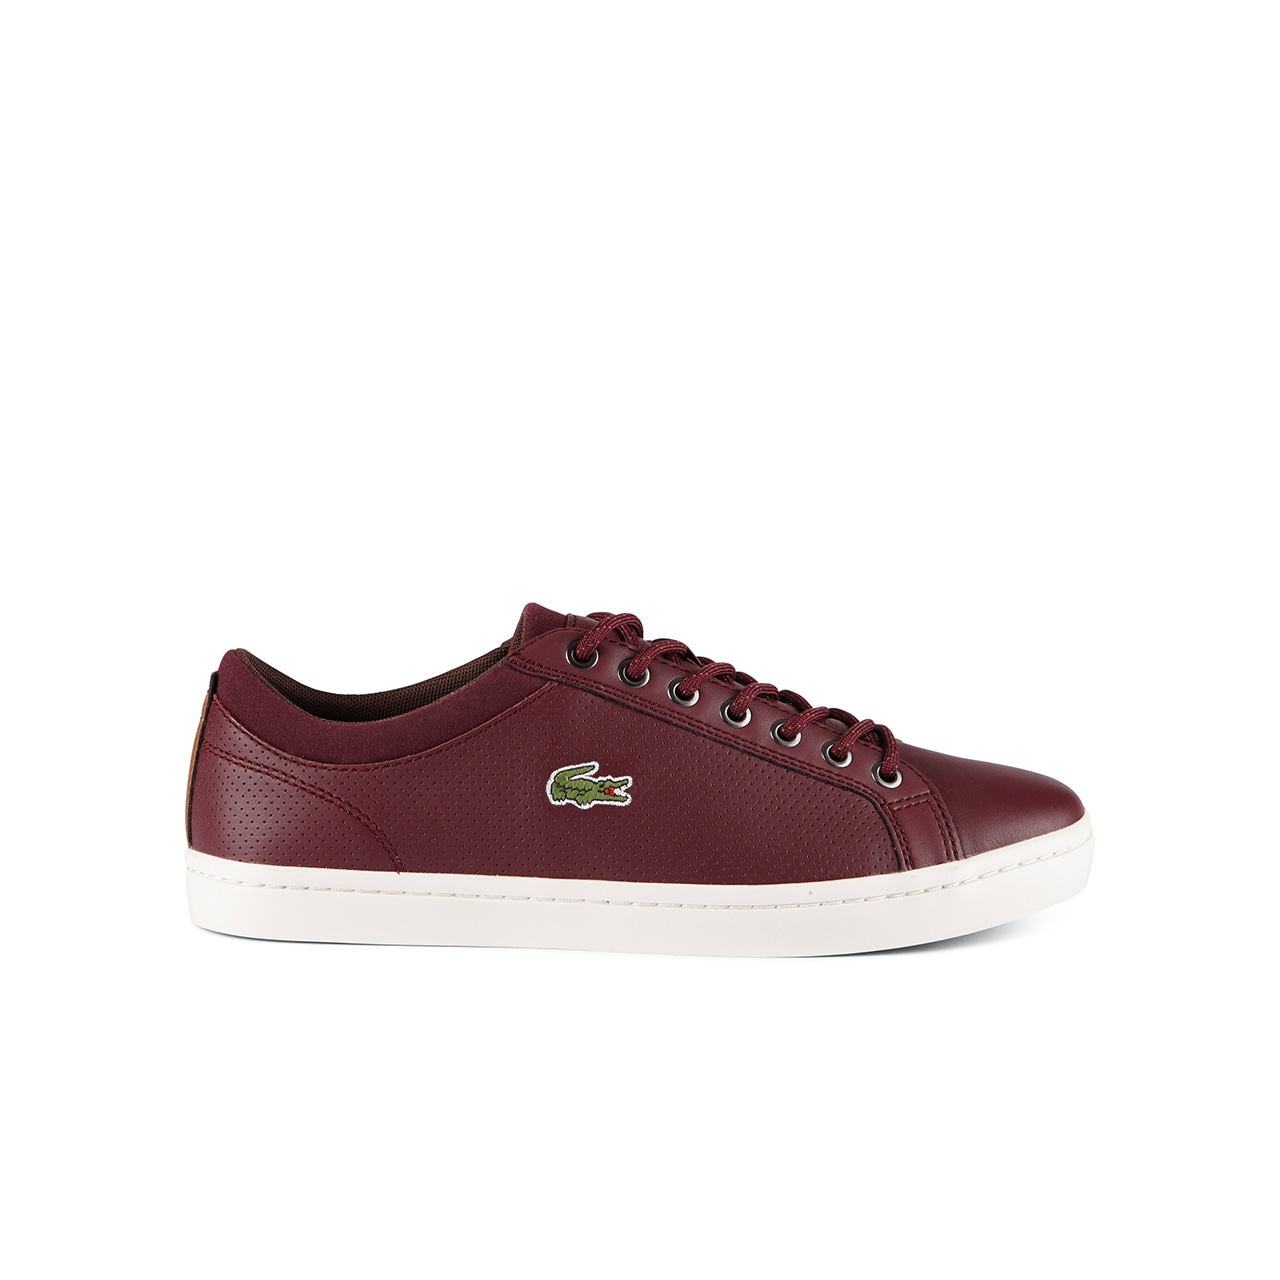 Lacoste MEN'S STRAIGHTSET LEATHER SNEAKERS aK9ZUGfUMq